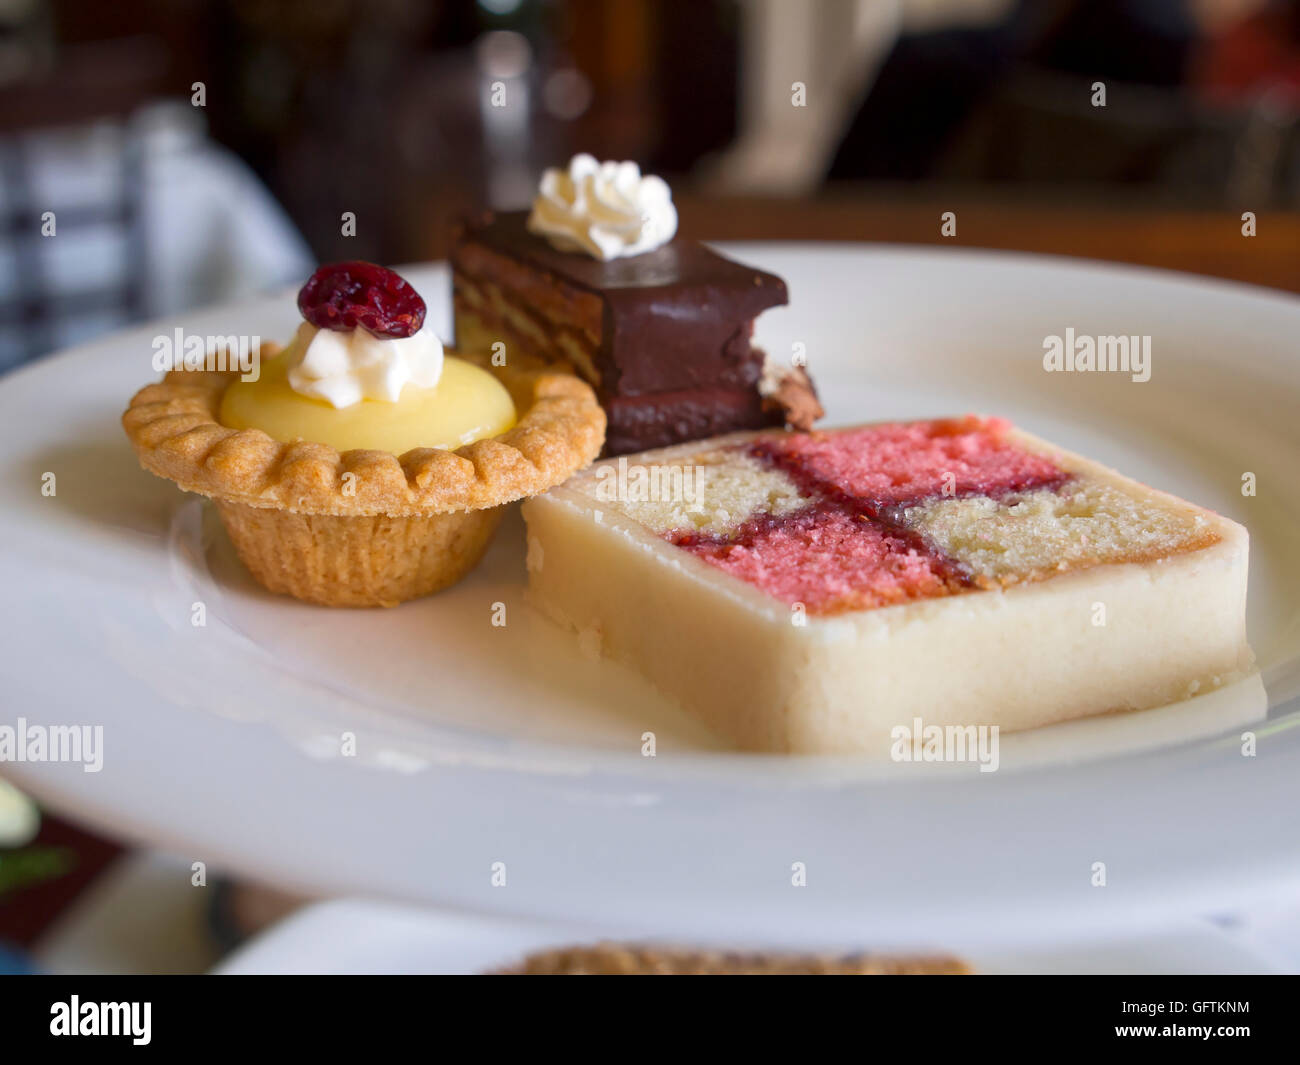 Sweet pastries for Afternoon Tea - Stock Image